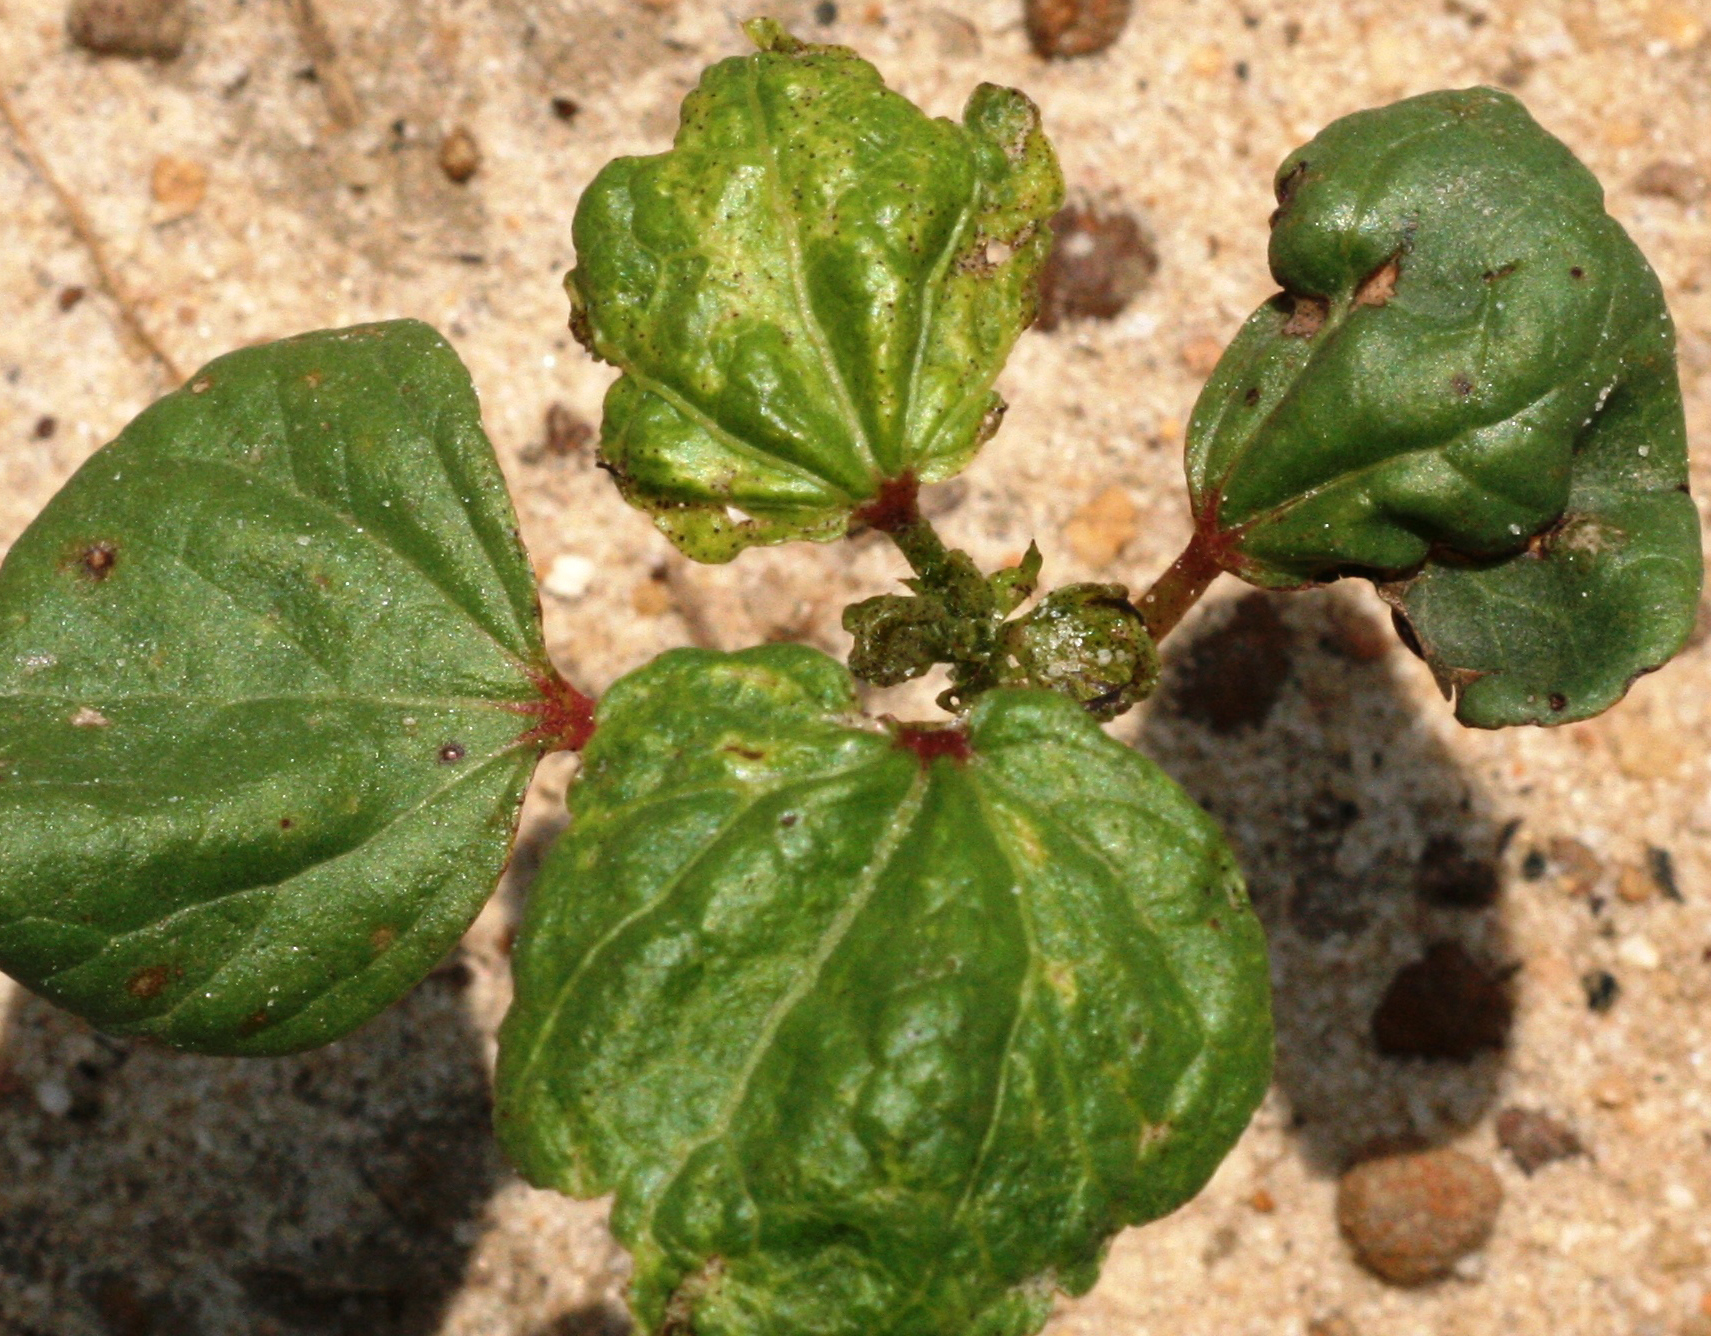 Pictured is a cotton plant impacted by thrips damage.